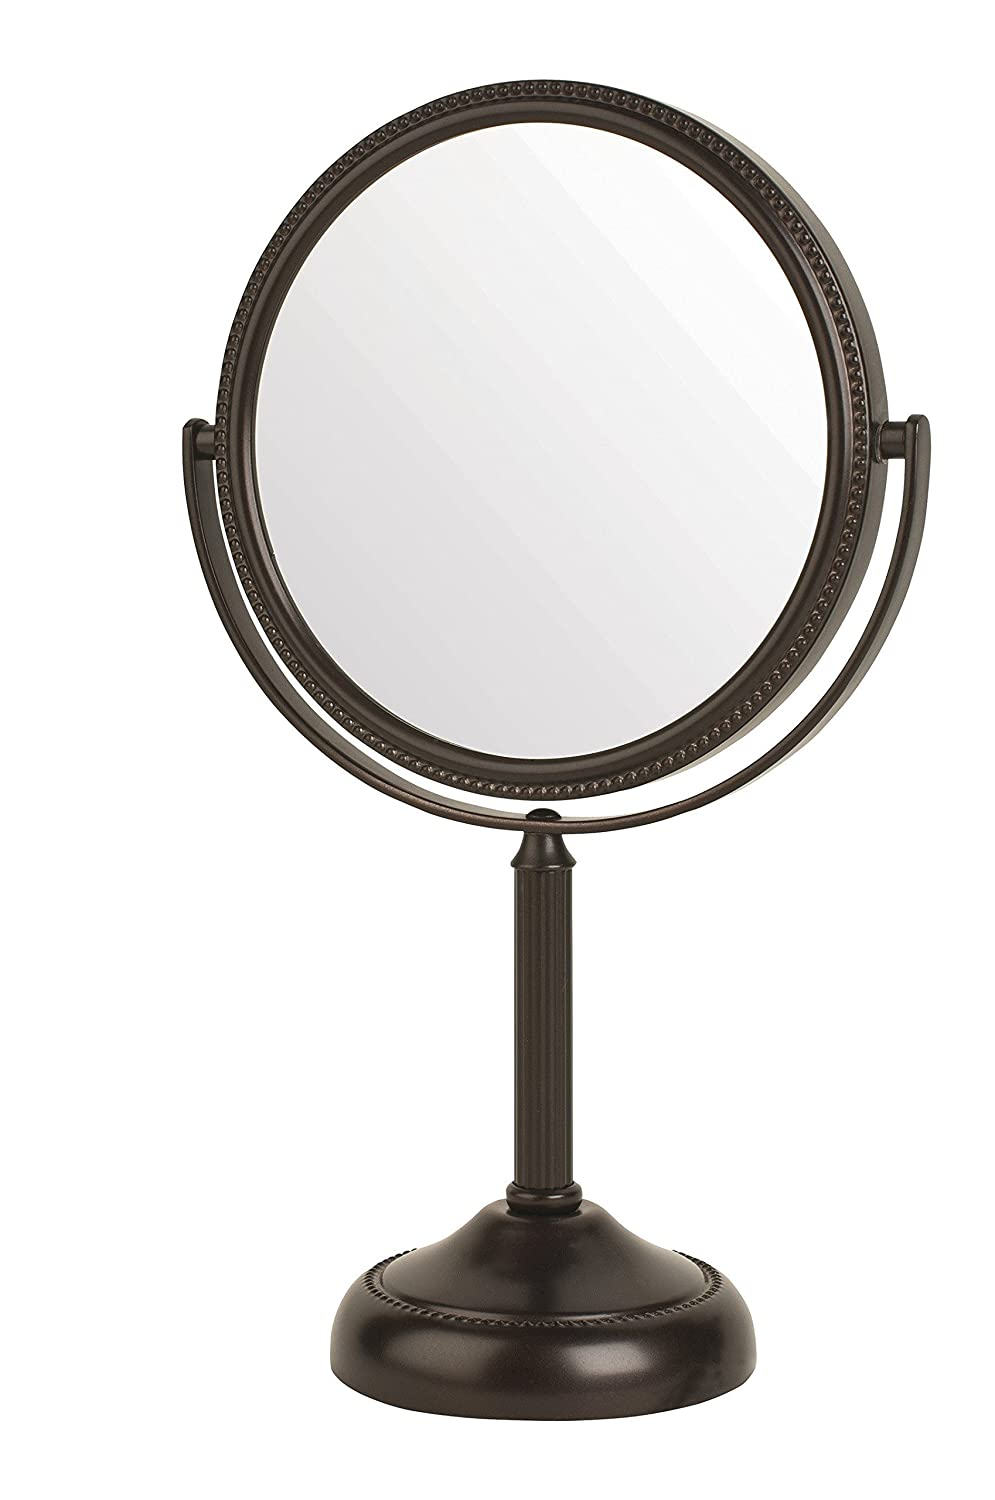 Jerdon JP910BZP 6-inch Tabletop Two-Sided Swivel Vanity Mirror with 10x Magnification, 11-inch Height, Bronze Finish